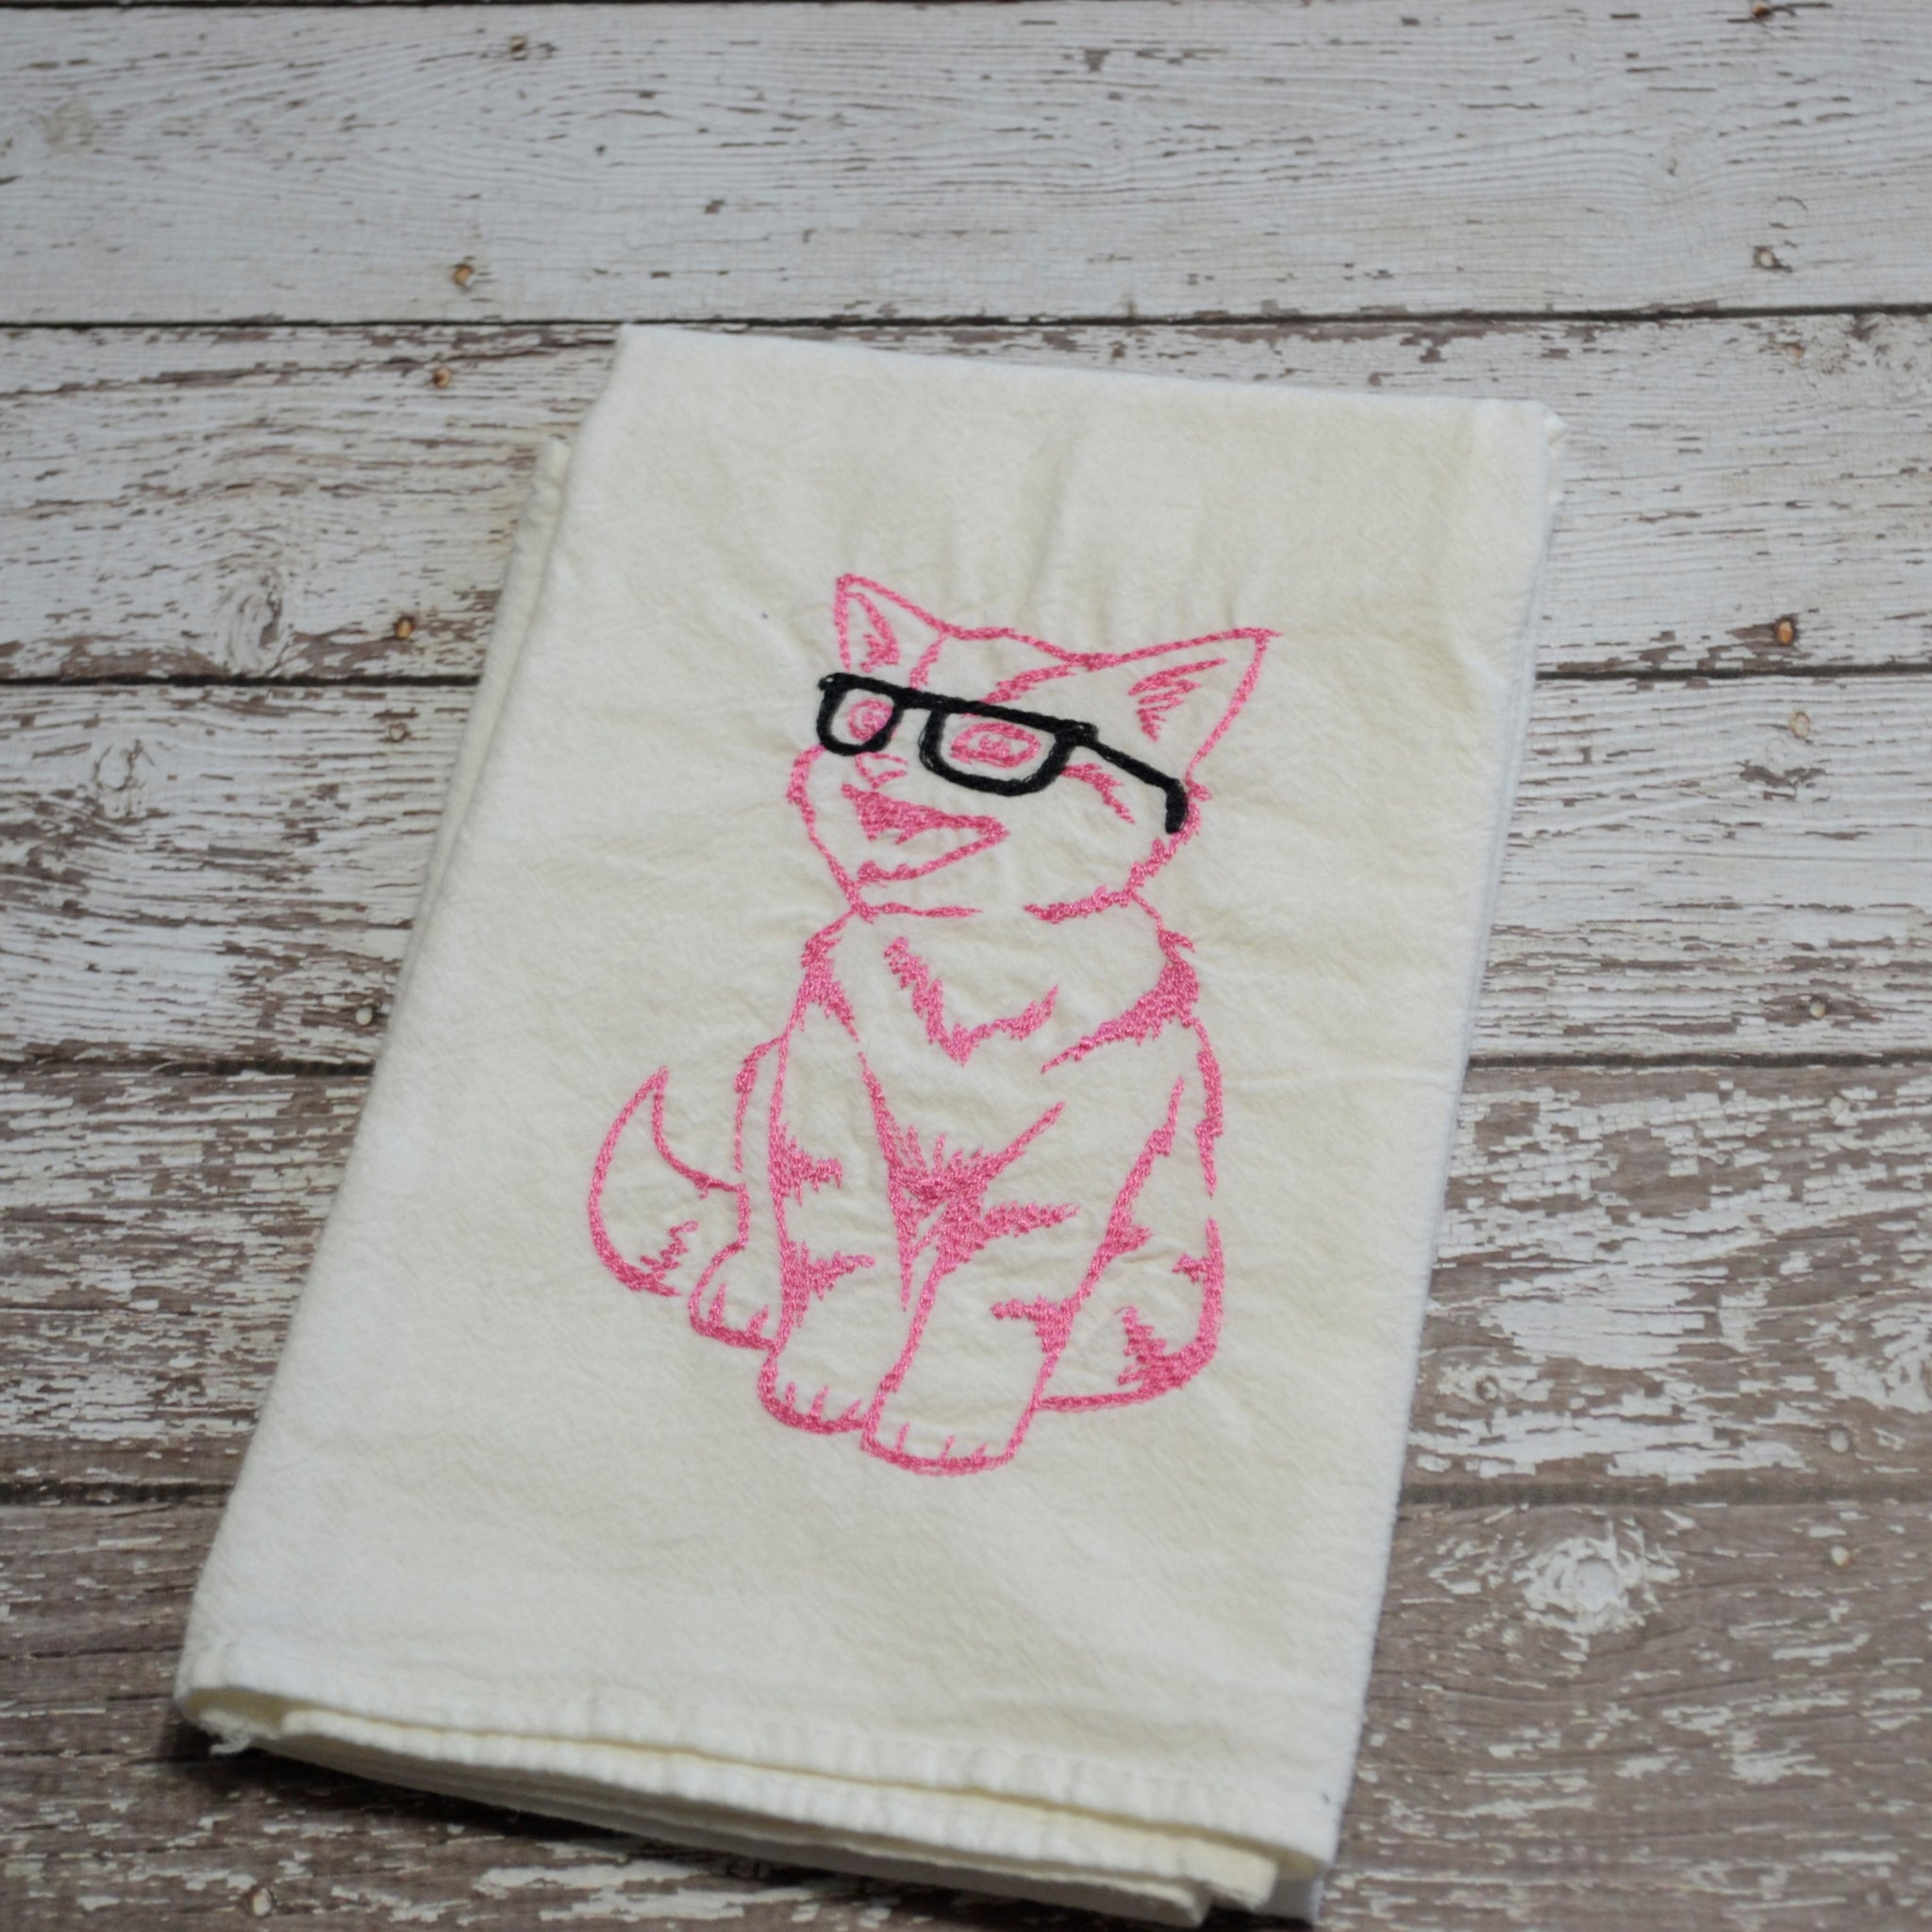 *SECONDS* Tea Towel - Nerdy Kitty Pink with Black Glasses - T49